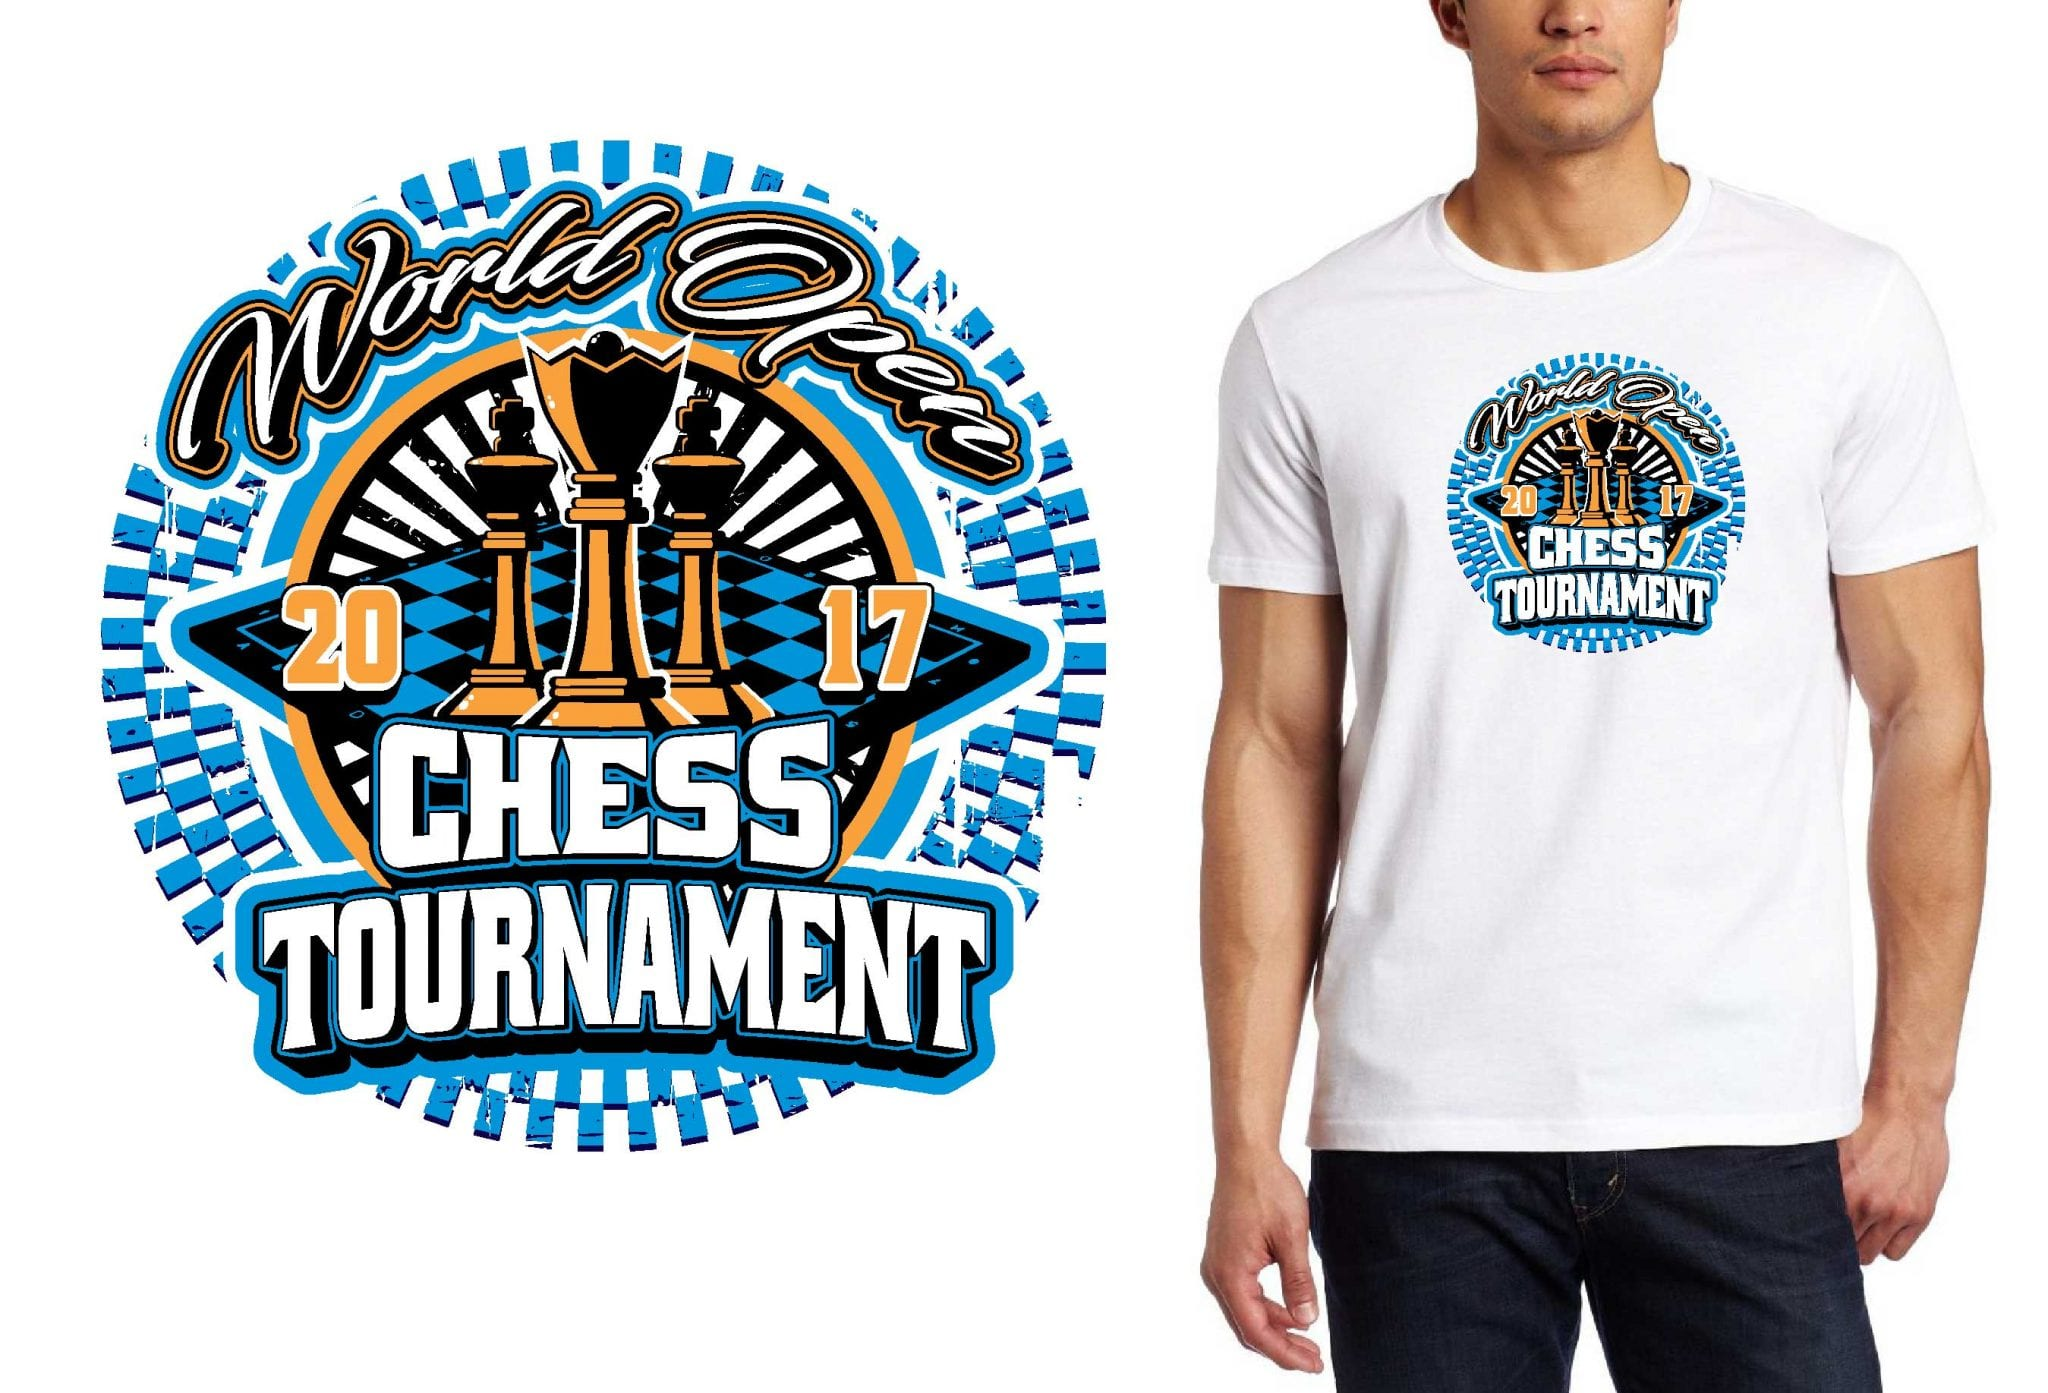 2017 World Open Chess Tournament vector logo design for chess t-shirt UrArtStudio